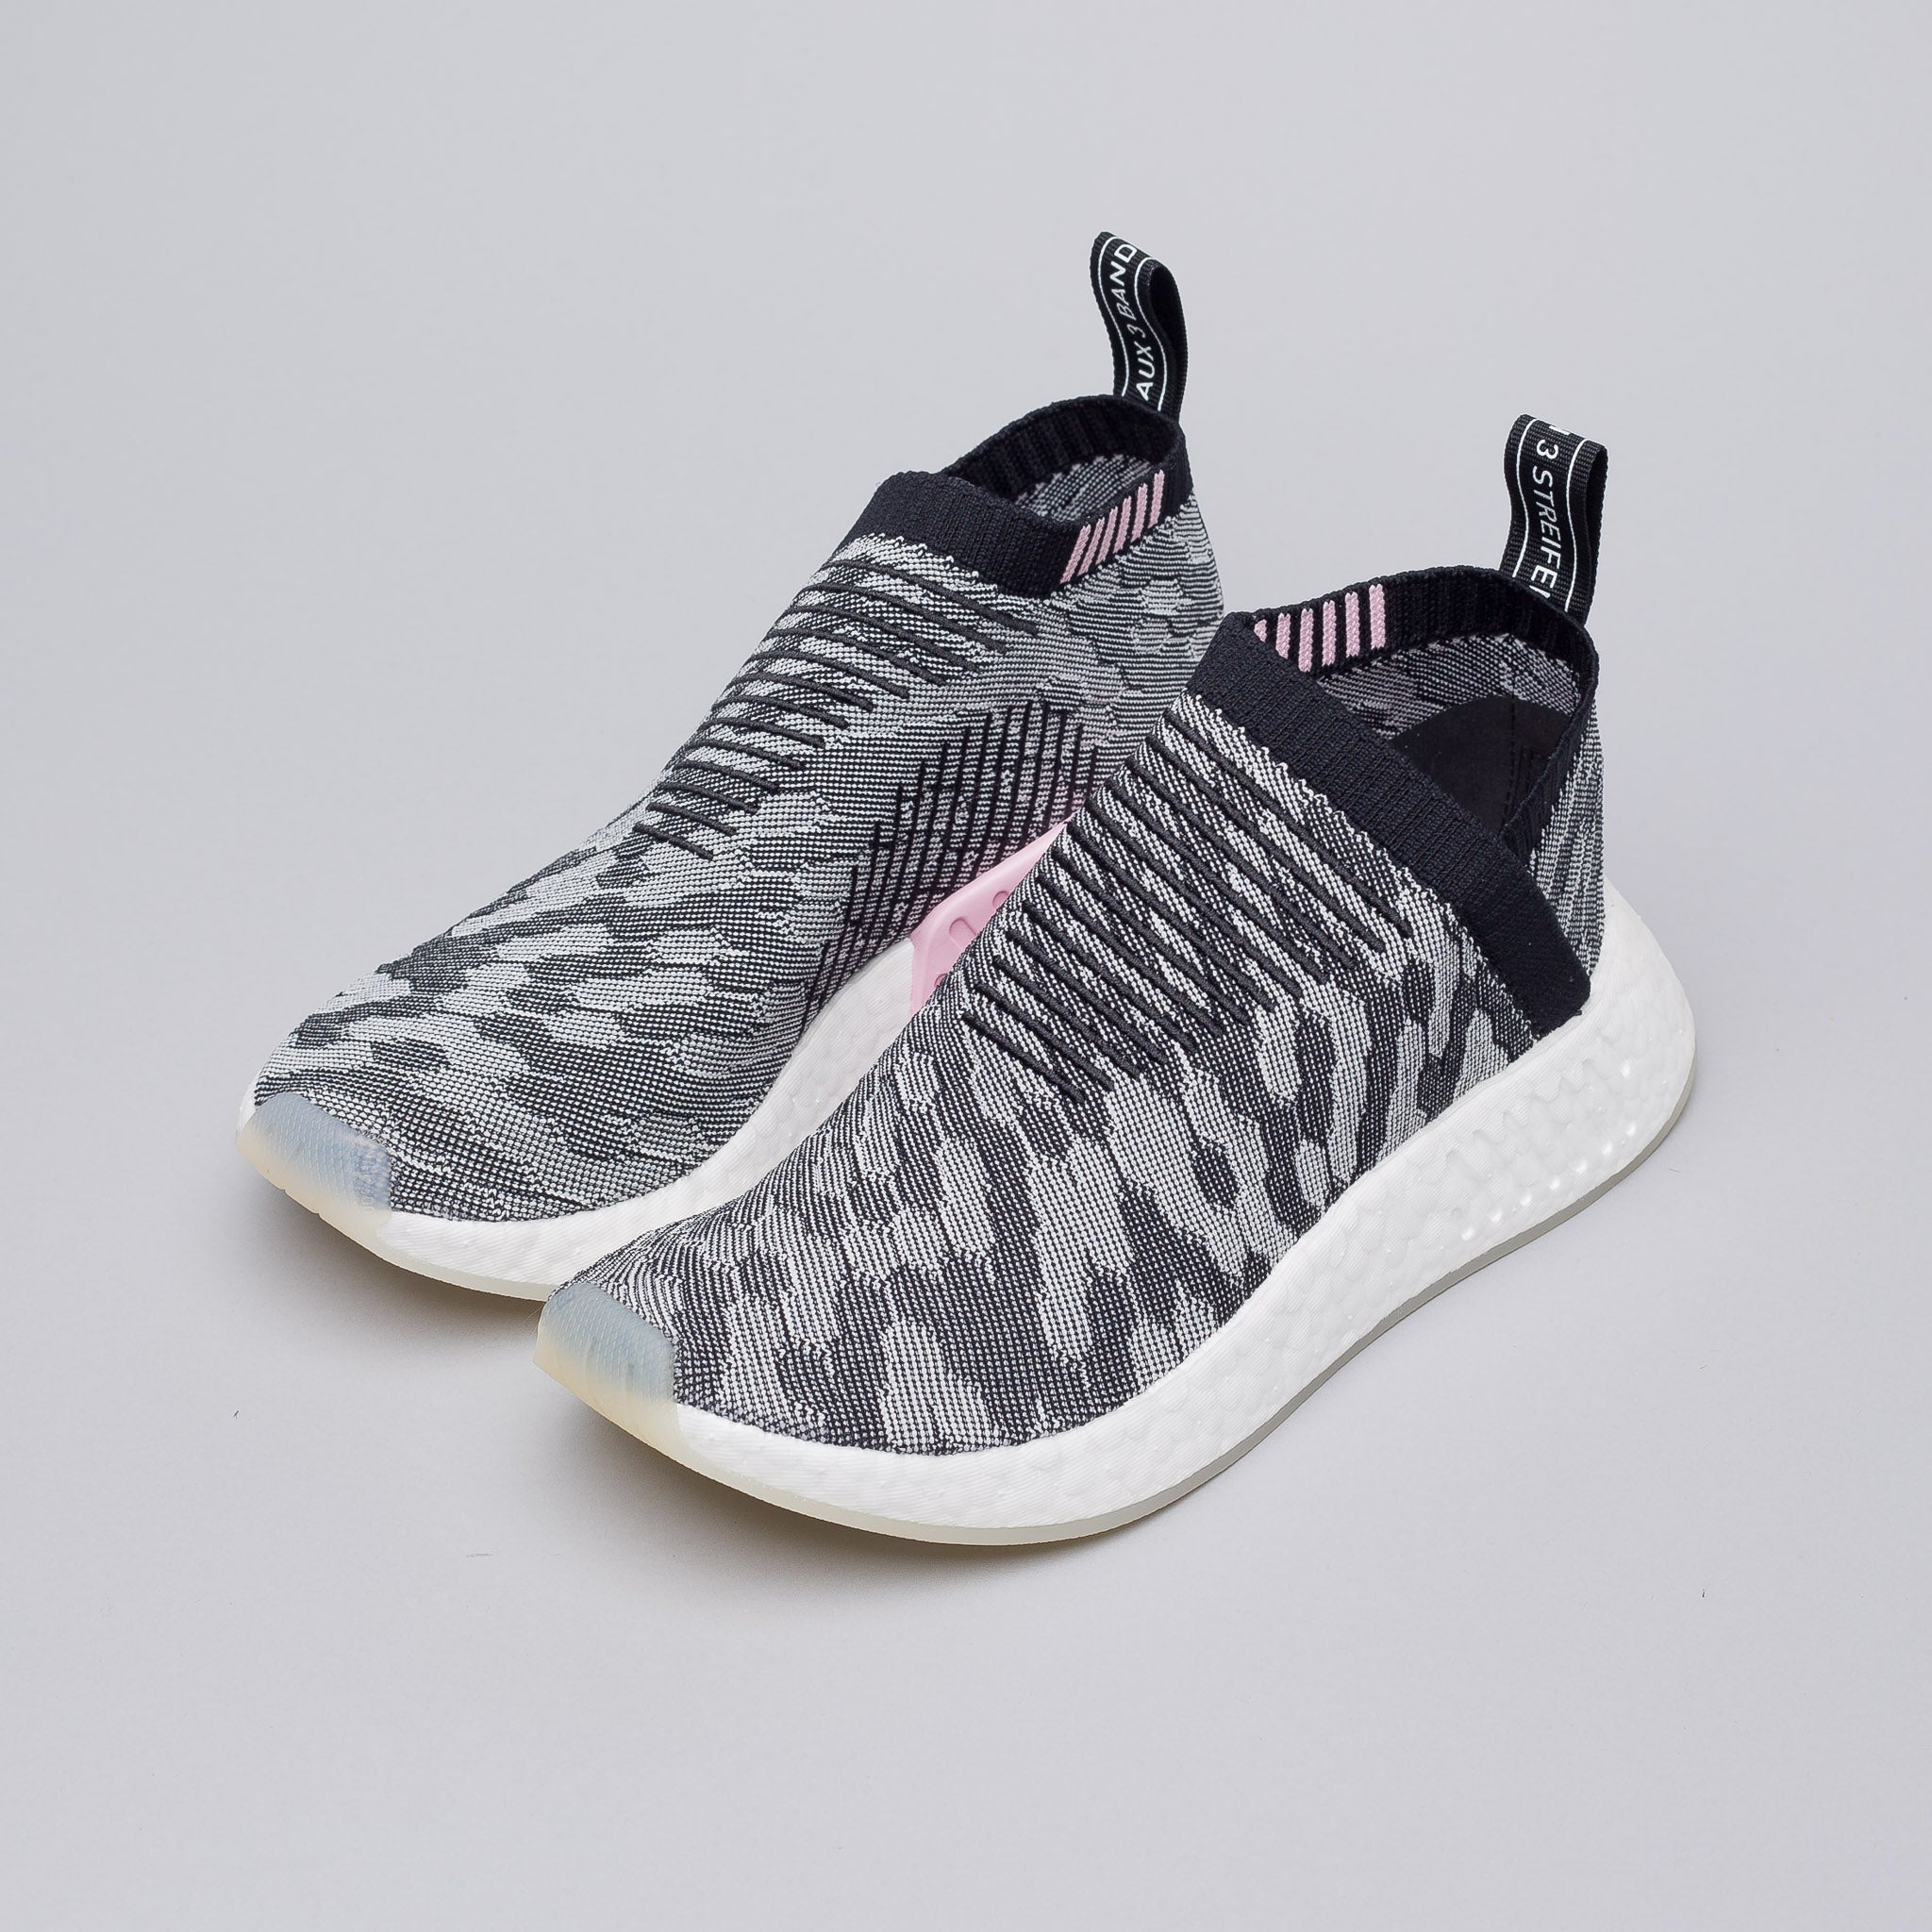 47e0c62c78ce6 Top Quality Nmd R1 Champs Burgundy Black White Grey Wool Nmd